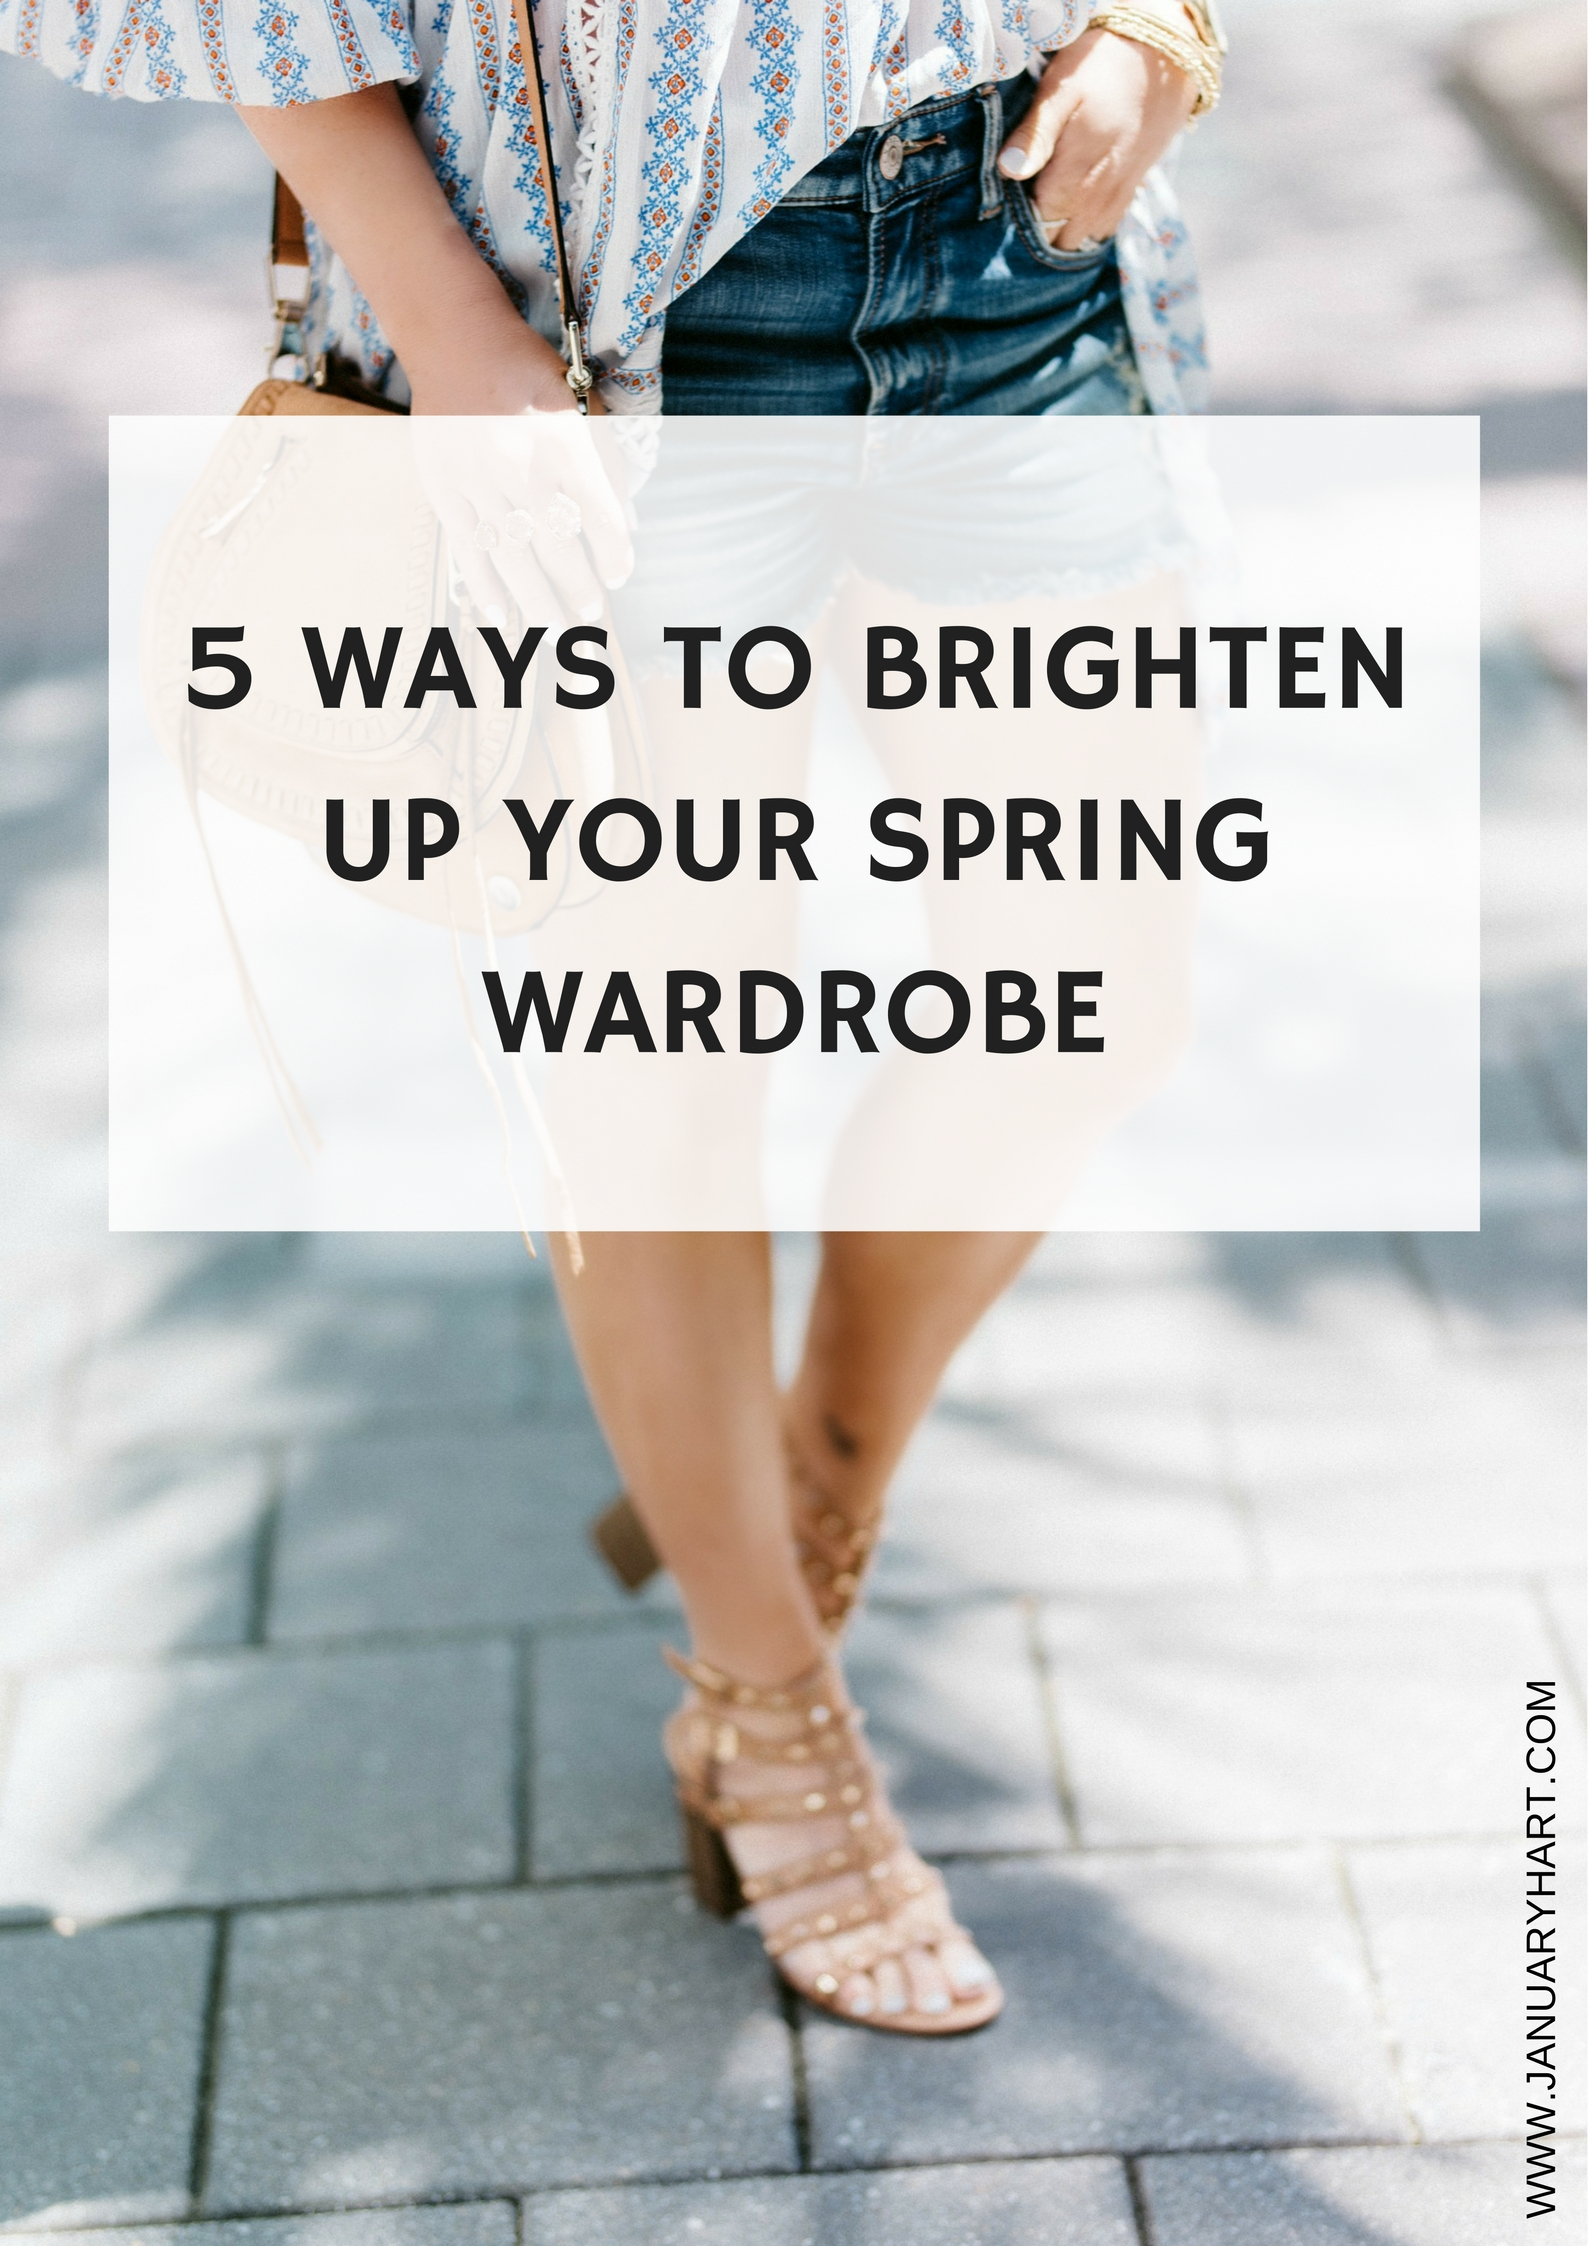 How to Brighten up your Spring Wardrobe